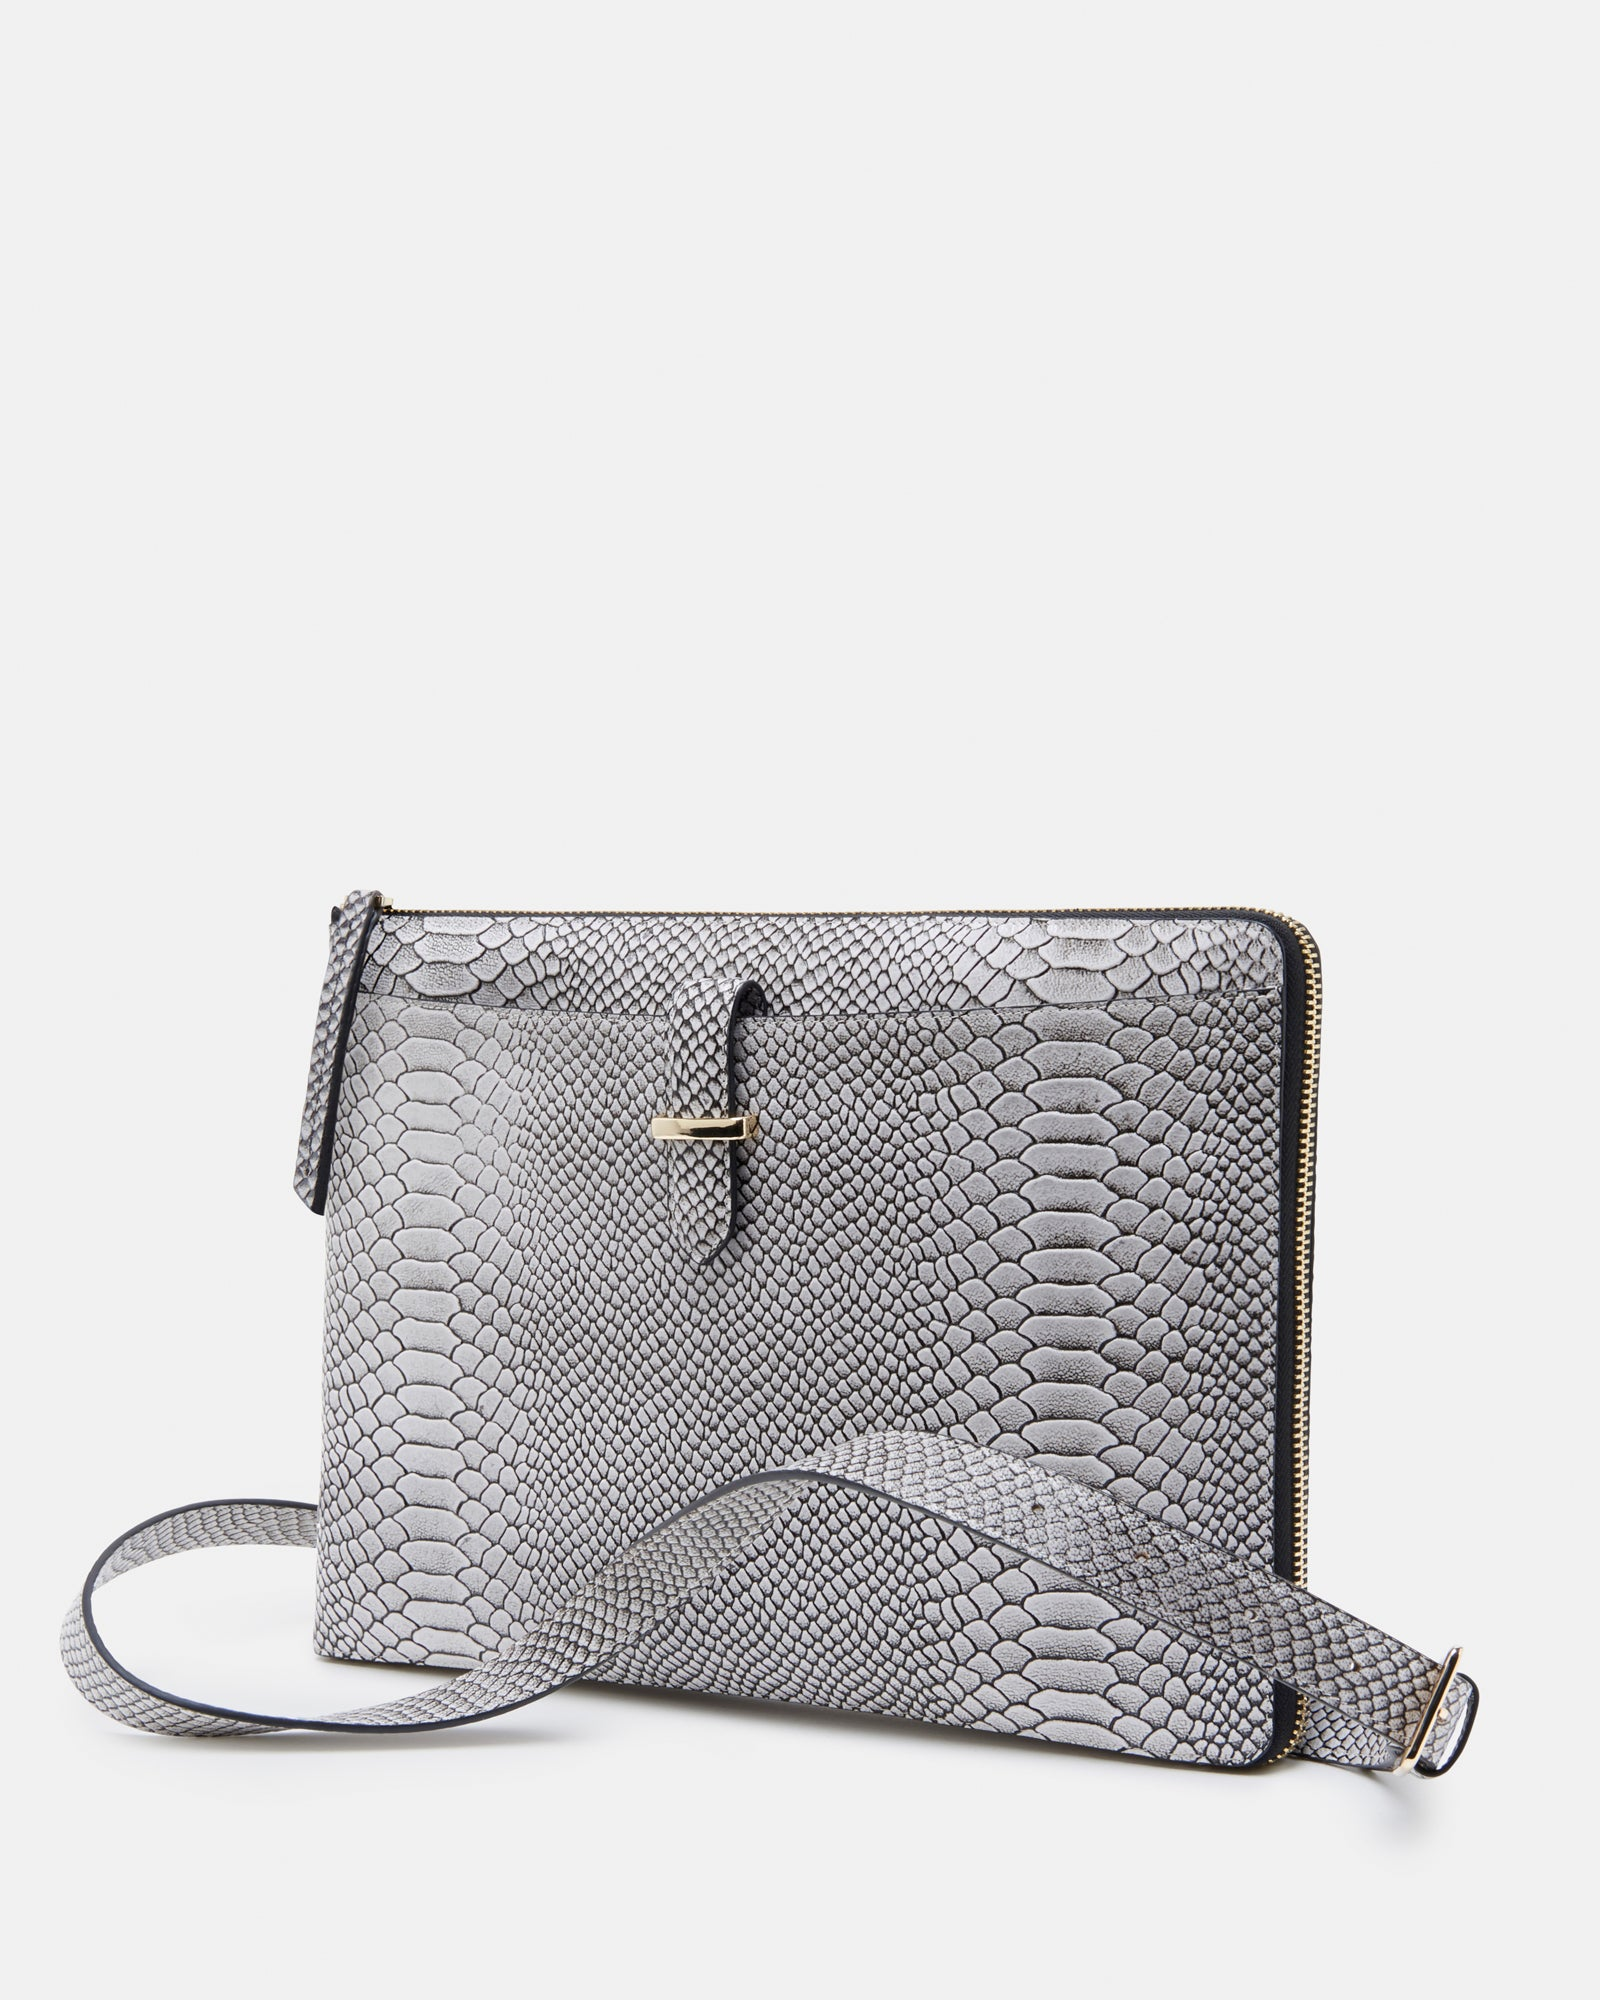 The Tycoon Black And White Leather Laptop Sleeve